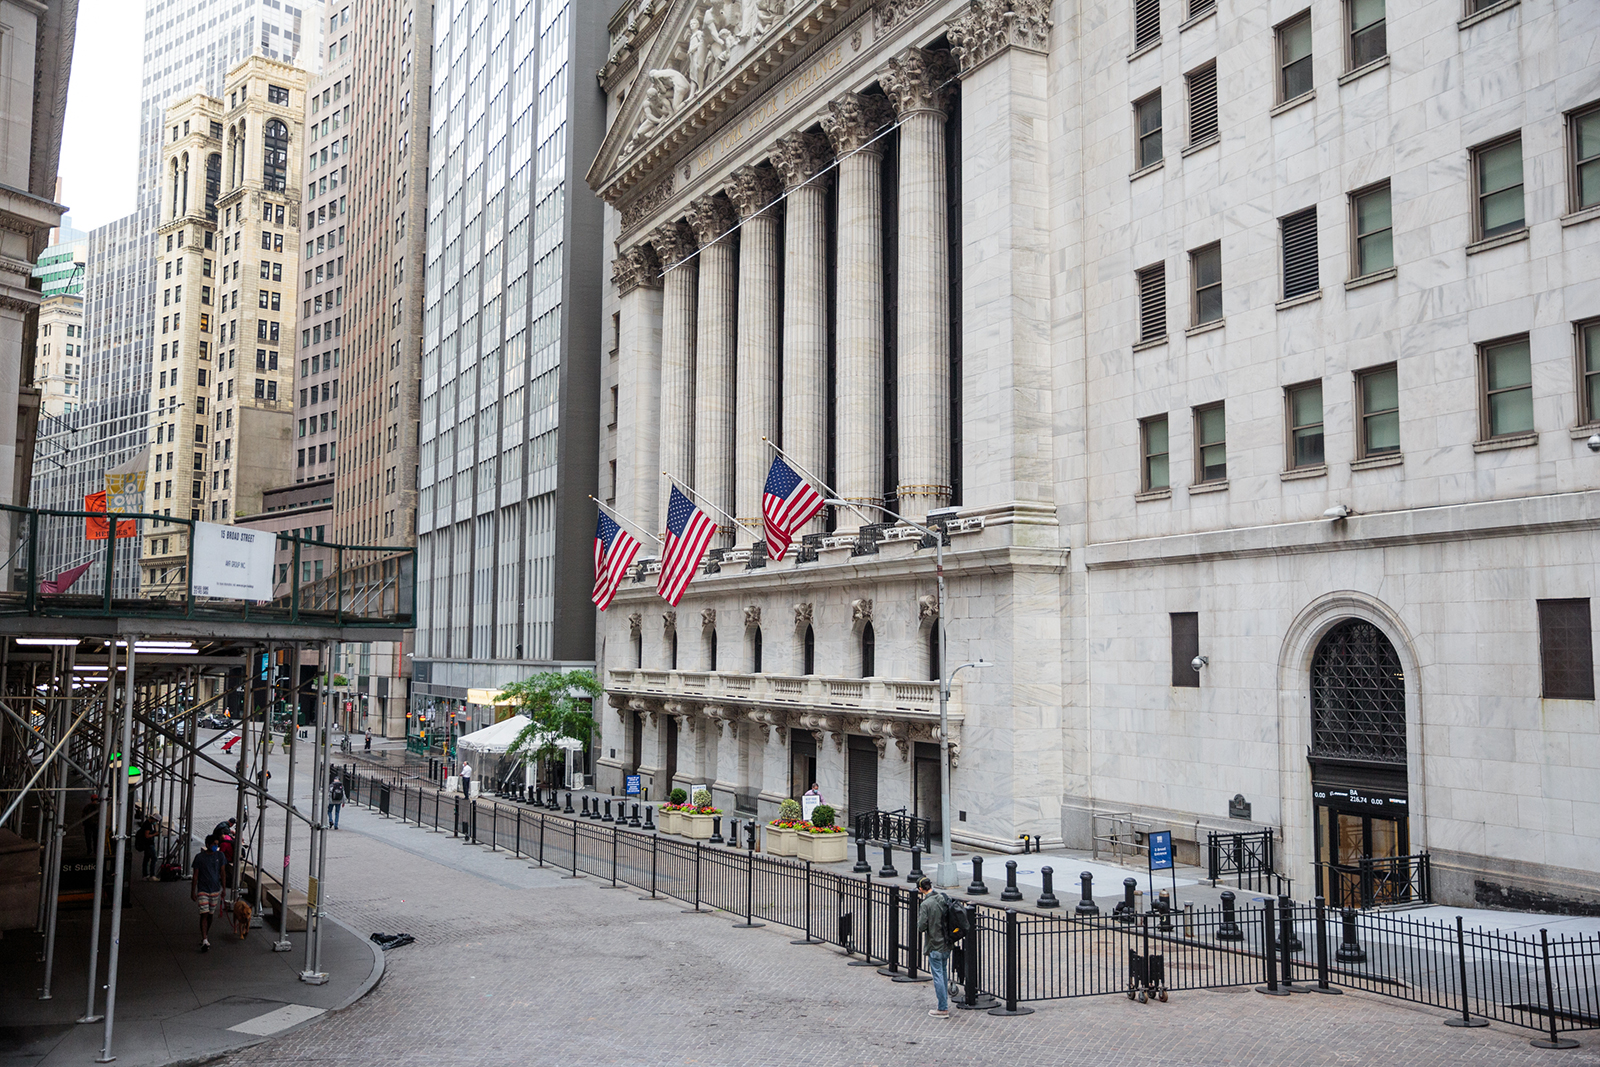 American flags hang on display outside the New York Stock Exchange (NYSE) in New York, on June 10.